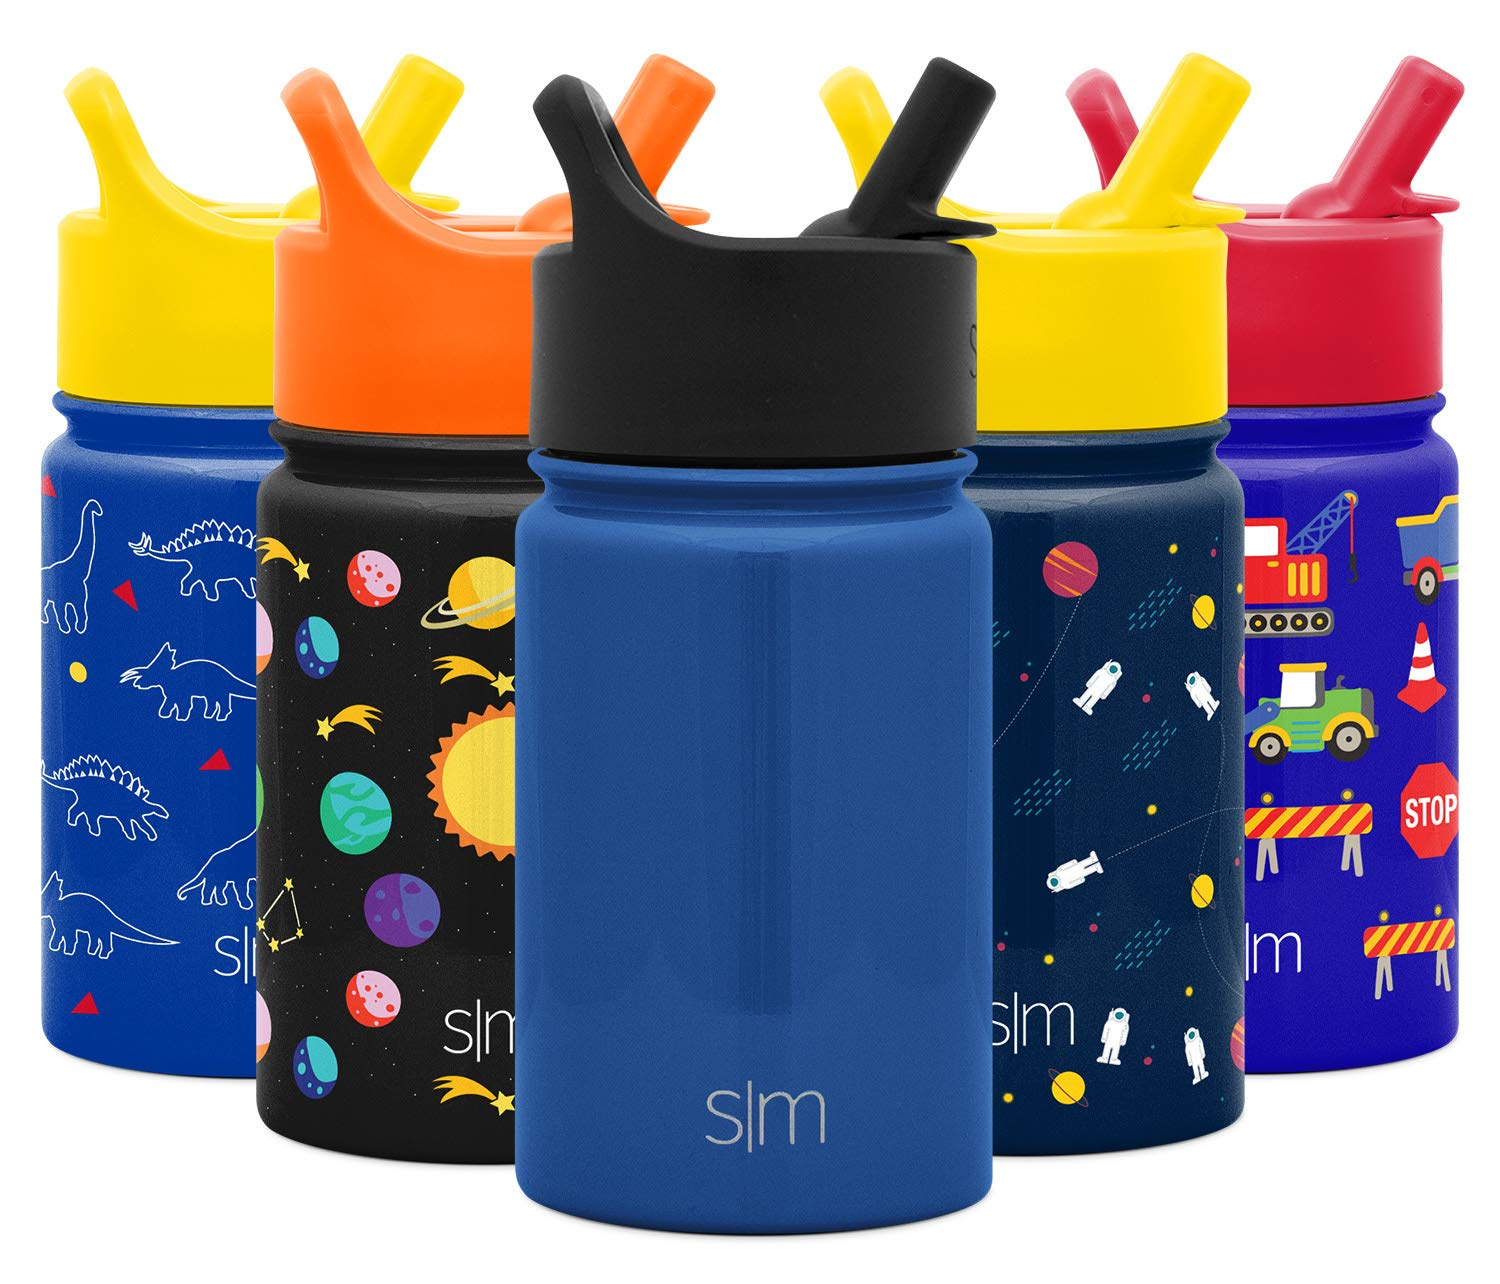 Simple Modern 10 oz Summit Kids Water Bottle with Straw Lid Sippy Cup - Hydro Vacuum Insulated Flask Double Wall Liter - 18/8 Stainless Steel -Twilight